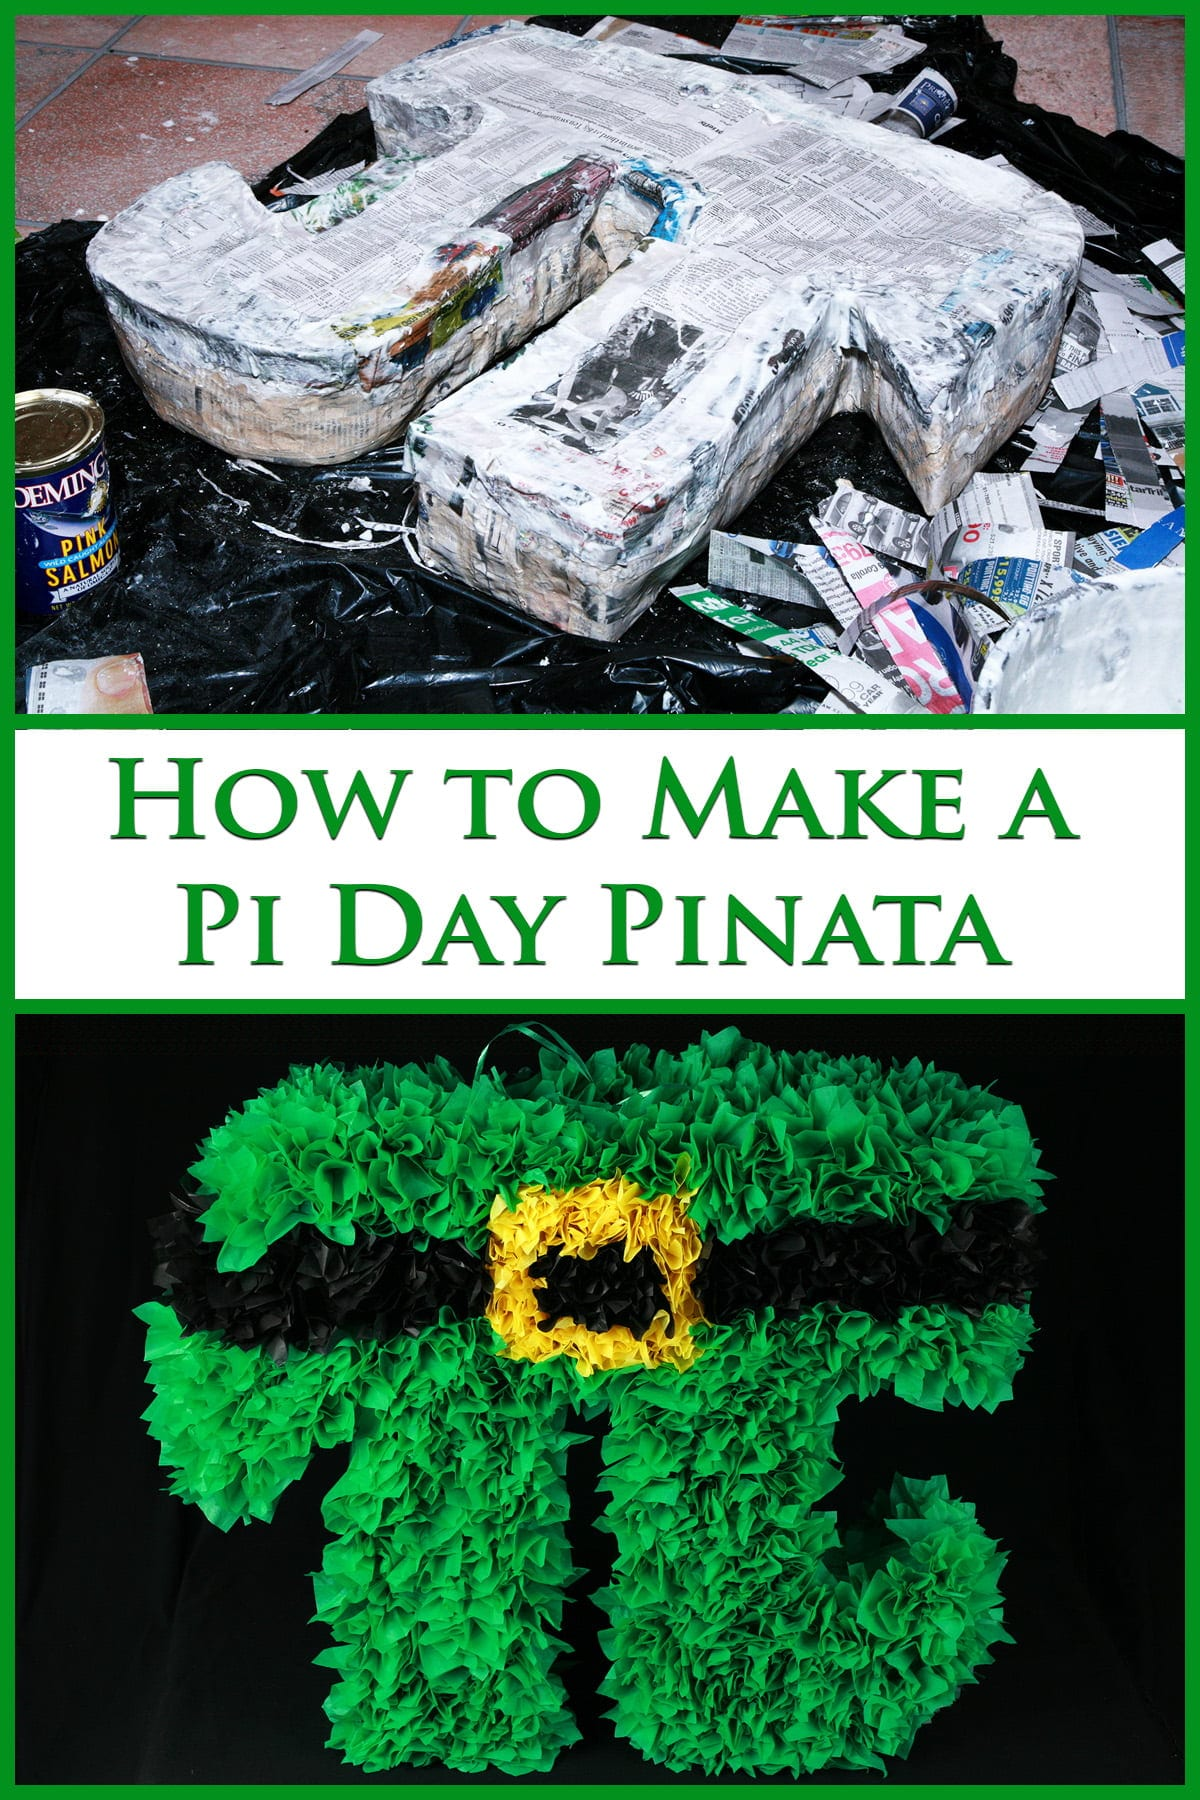 A two part compilation image shows the making of a pinata, and A bright green pi symbol-shaped pinata, against a black background. Text says How to make a pi day pinata.